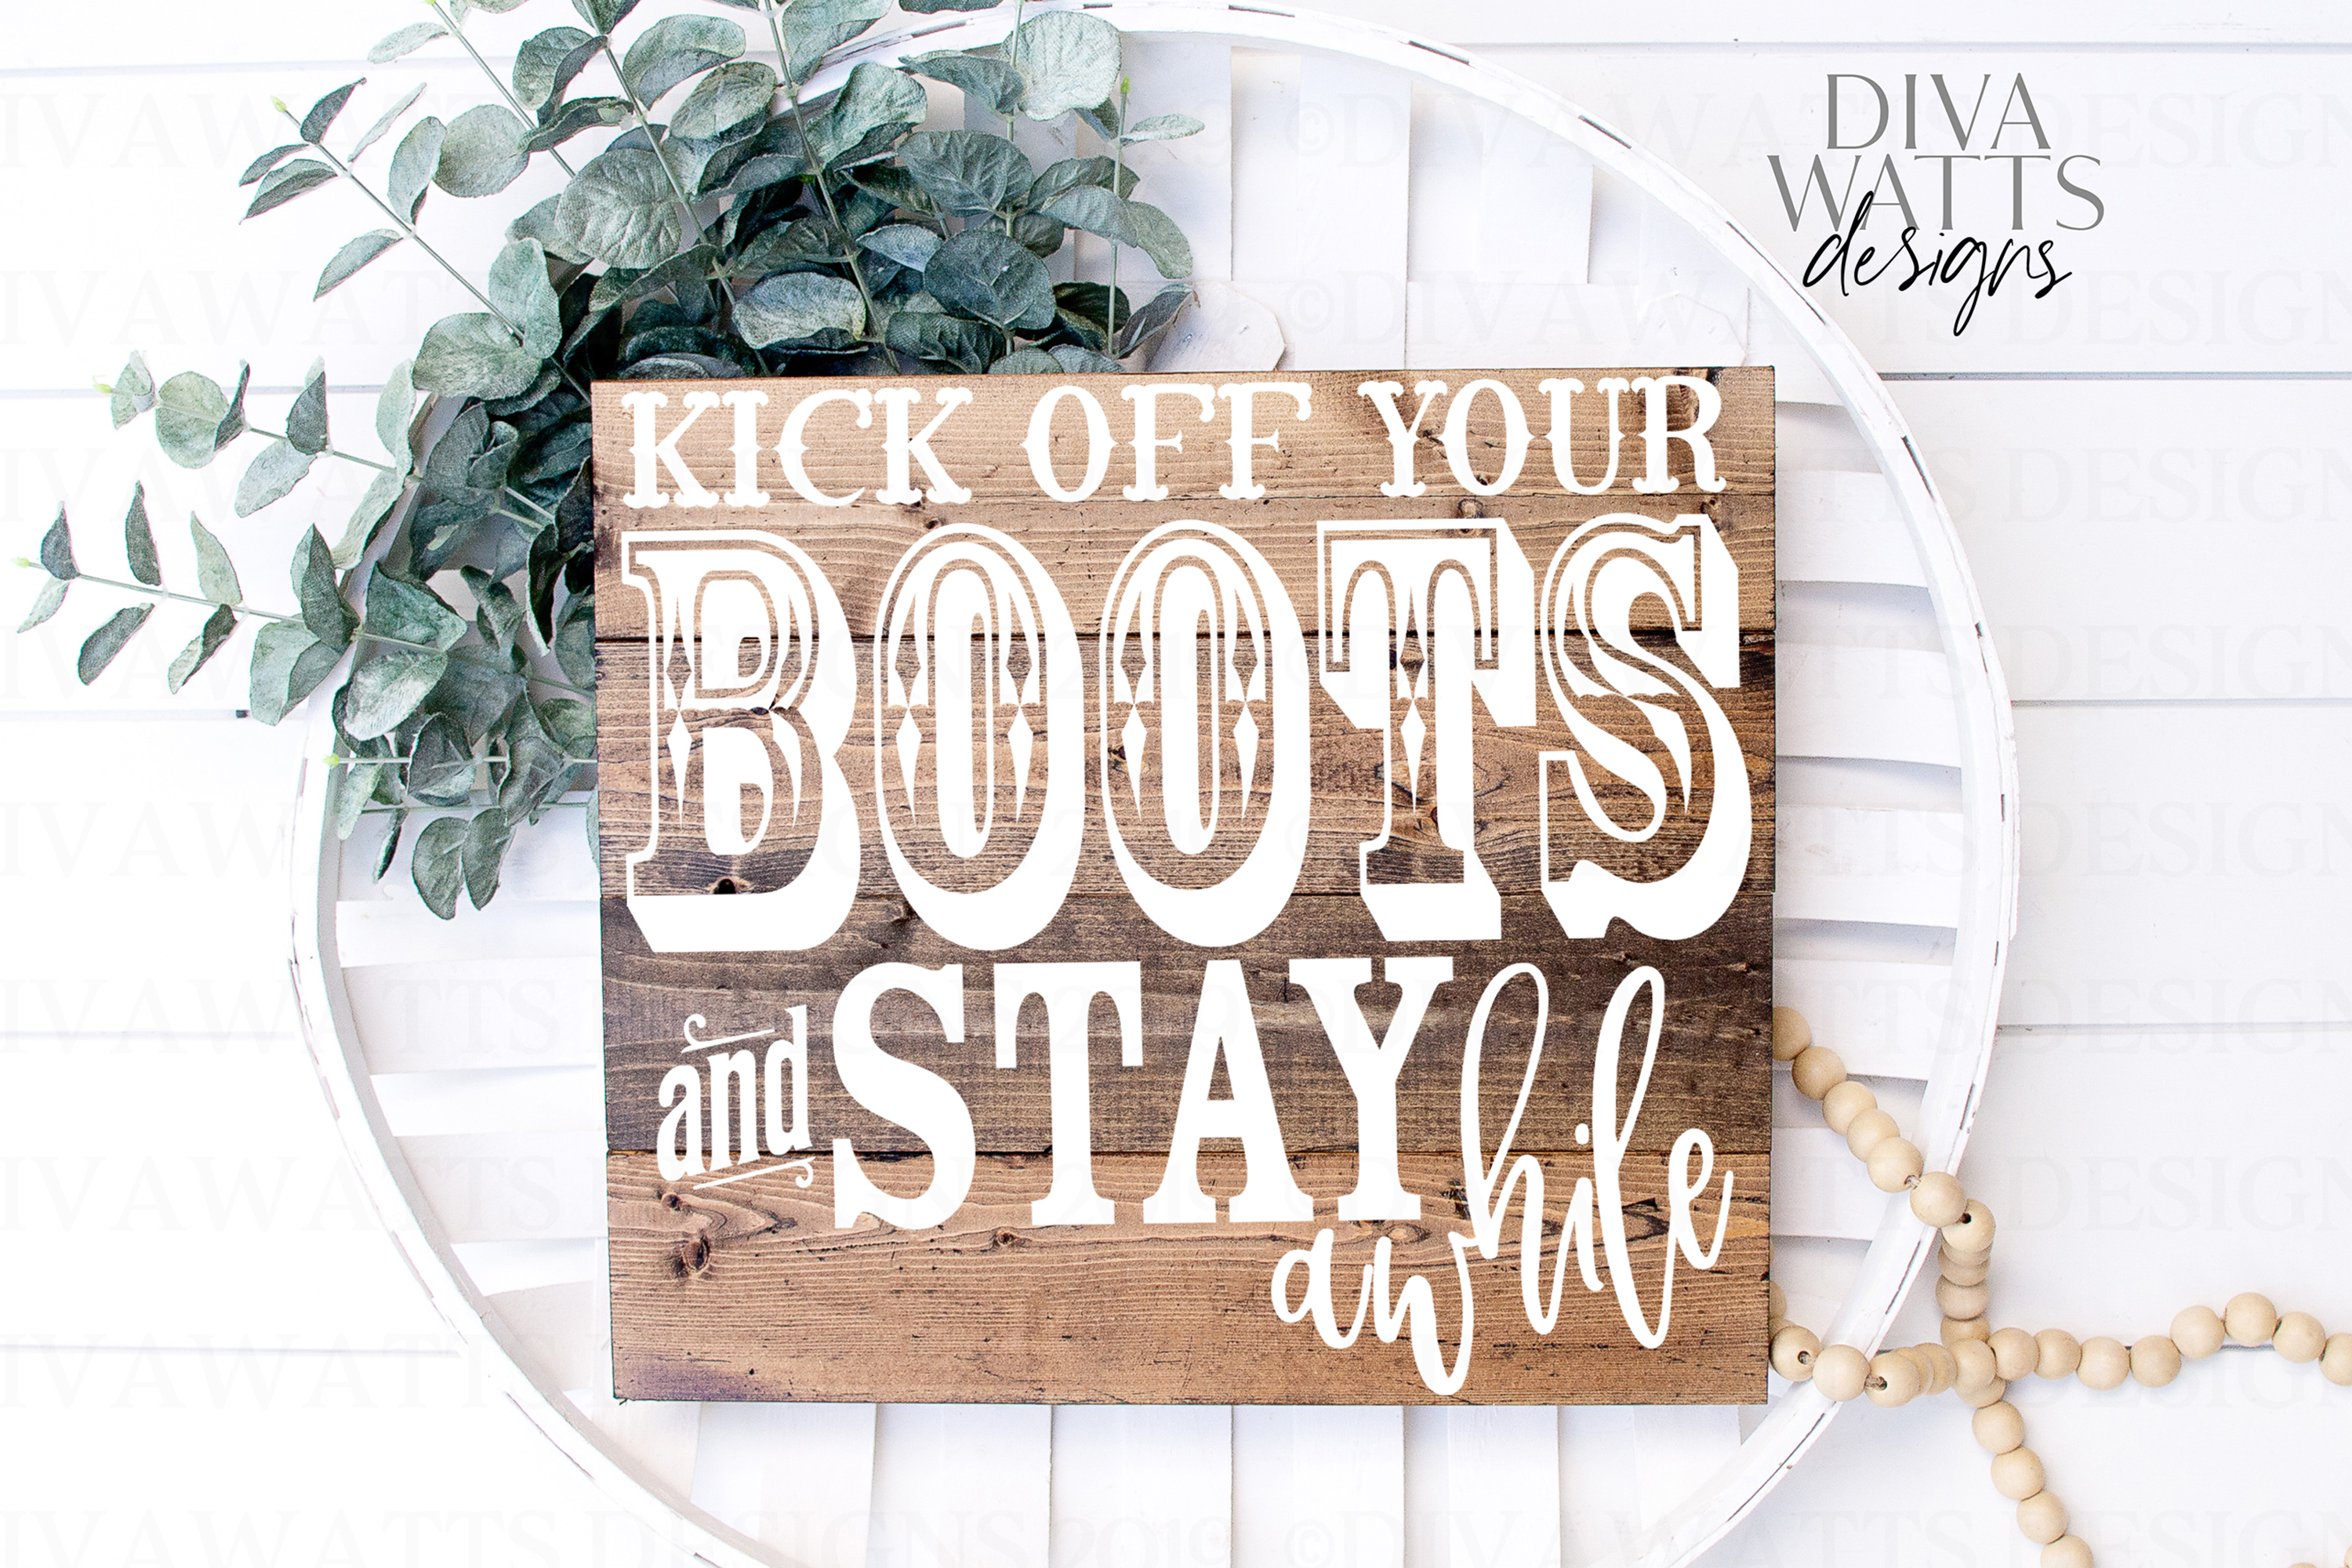 Kick Off Your Boots And Stay Awhile - Rustic Farmhouse SVG example image 2